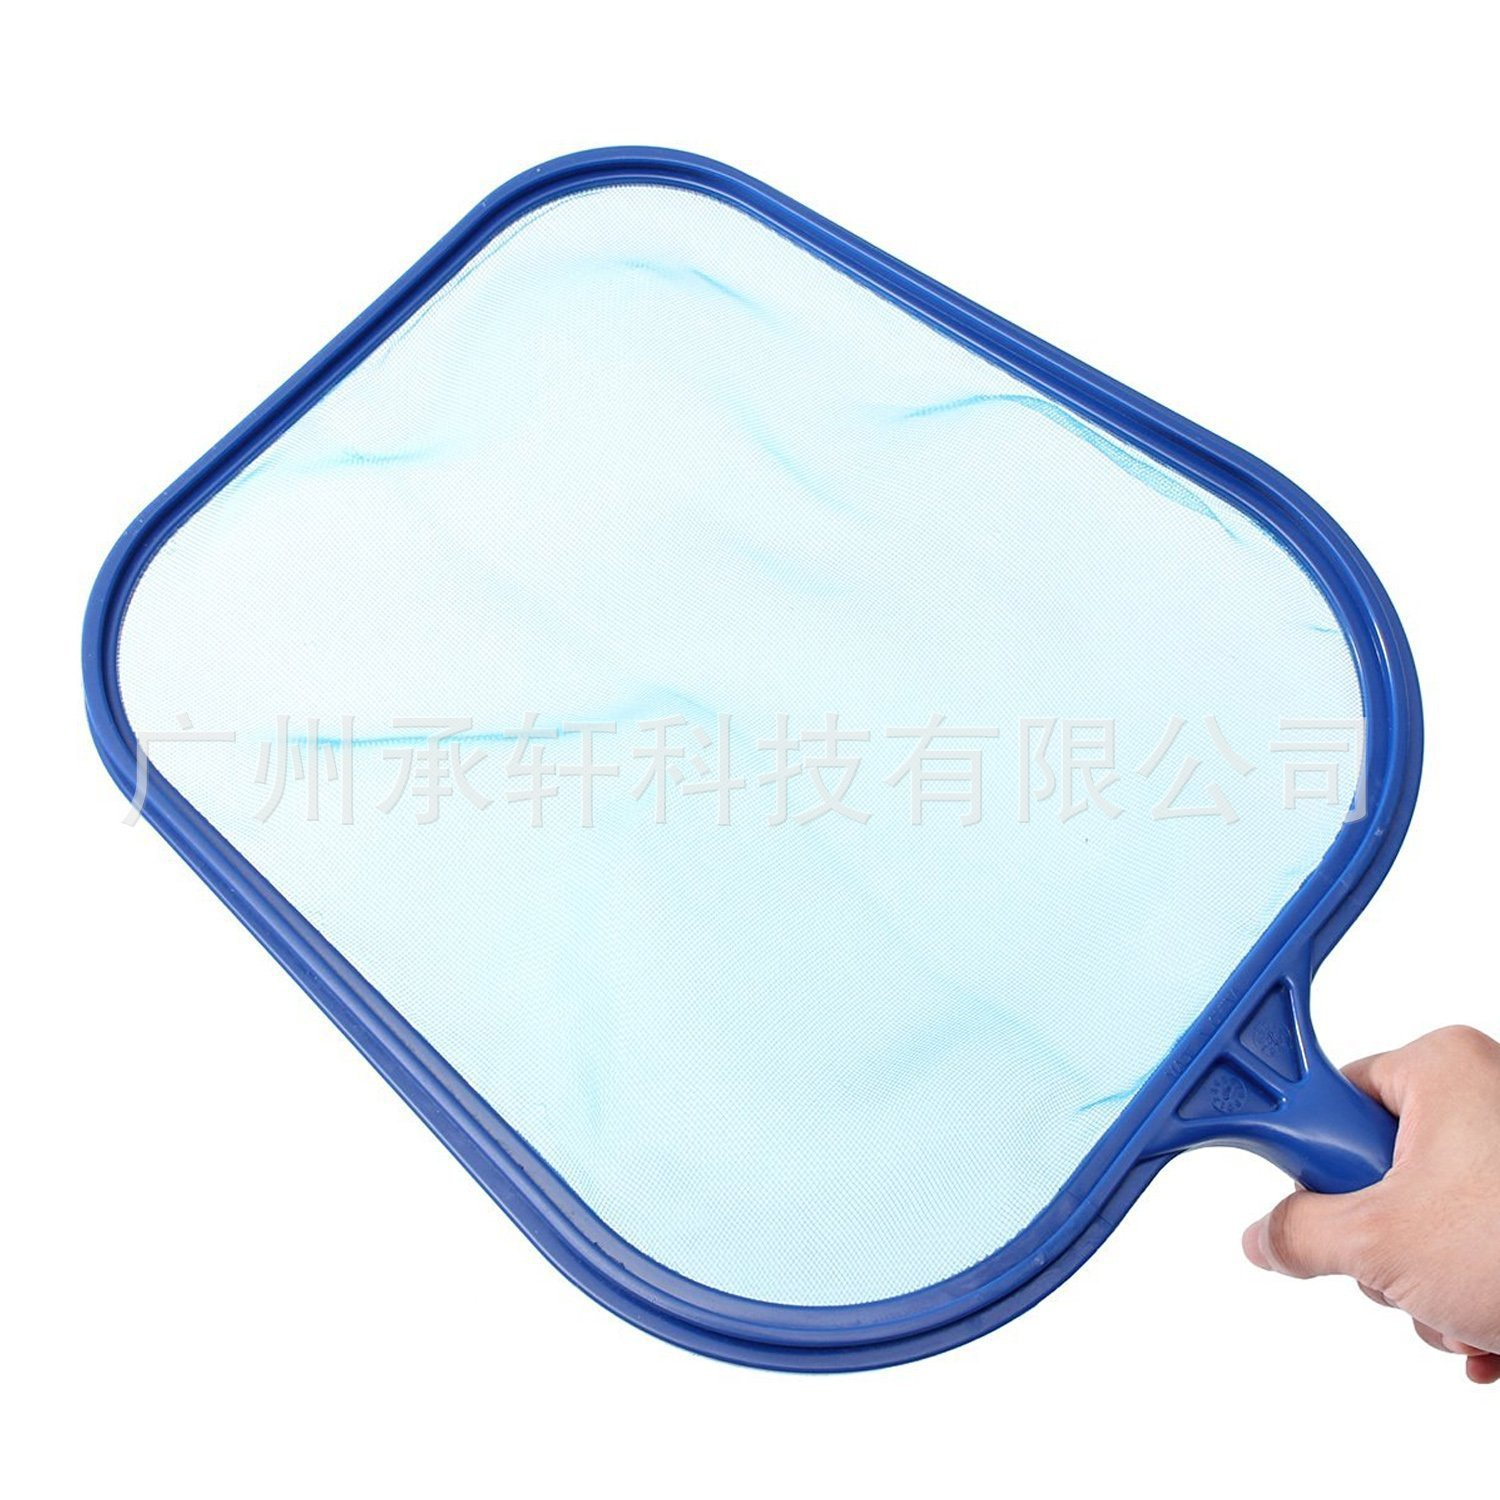 Swimming Pool Only Cleaning Tools Practical Economical Shallow Water Network Cleaning Water Surface Debris Dredge Scoop Net